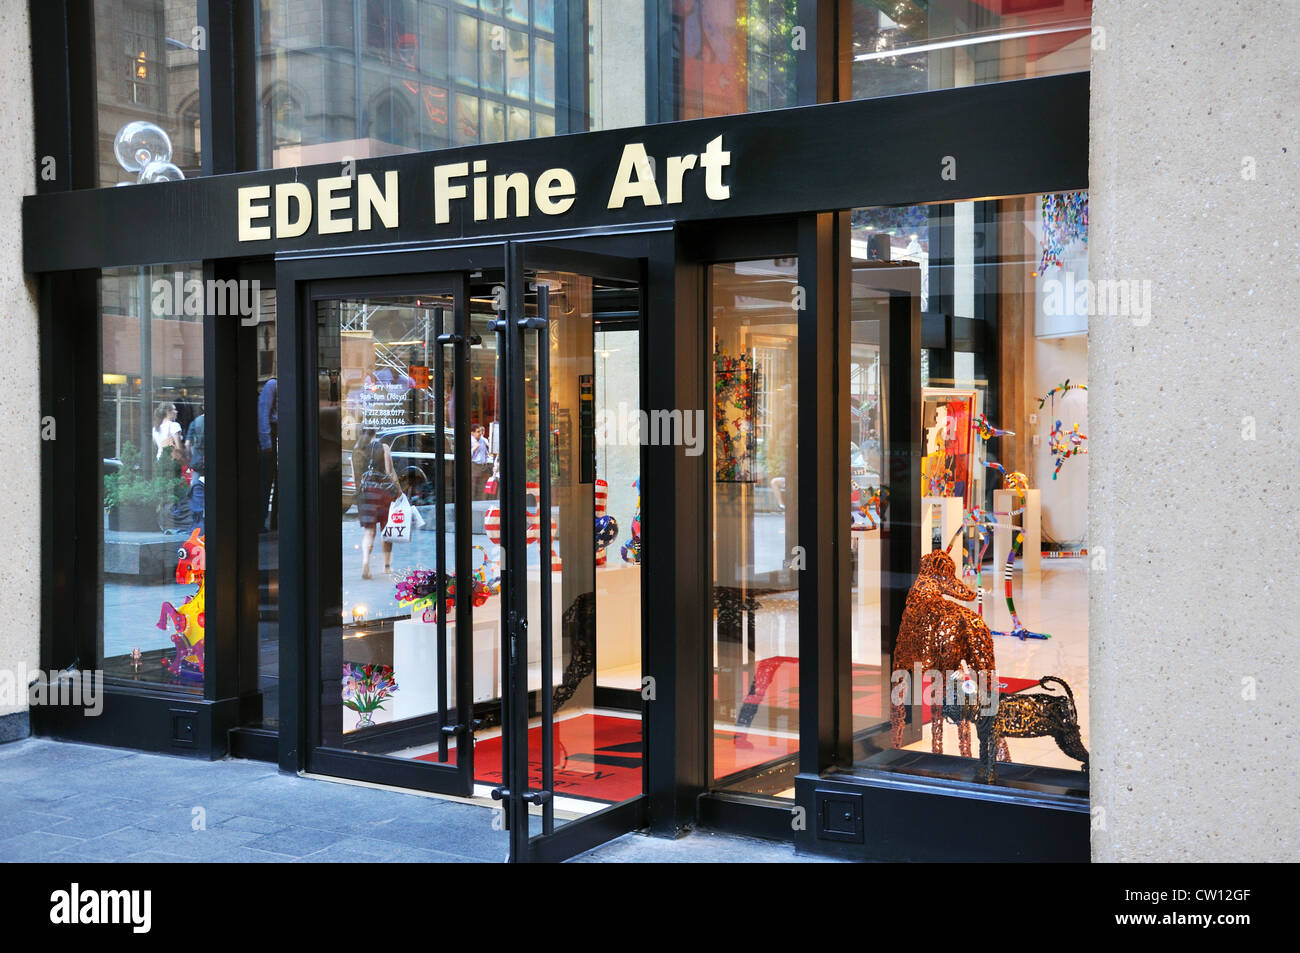 Eden Fine Art store and gallery, New York, USA - Stock Image